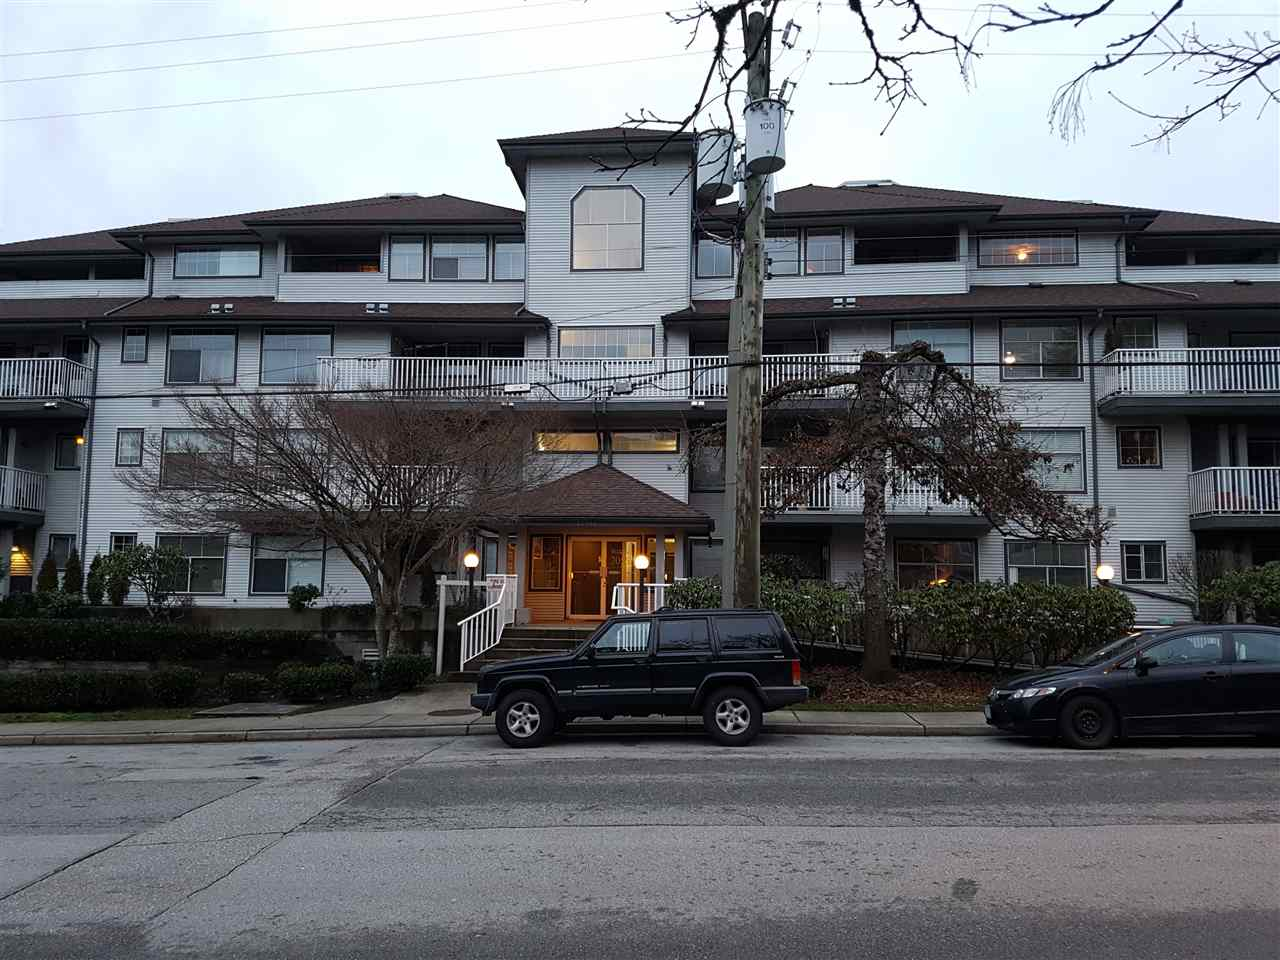 Cute 1 bedroom unit on the West side of Maple Ridge, close to schools, shopping, and transportation, including West Coast Express. Simple layout features functional kitchen w/ lots of counter space, large living room and dining area, big master bedroom w/ semi-ensuite, and large laundry area w/ room for storage. Hot water heating included in strata fees.  Big, mostly covered deck w/ Southern exposure. 1 parking and 1 storage locker.  Great unit for first time home buyers, downsizers, or investors.  Immediate Possession available. Open House Sat Jan 13 2-4pm.